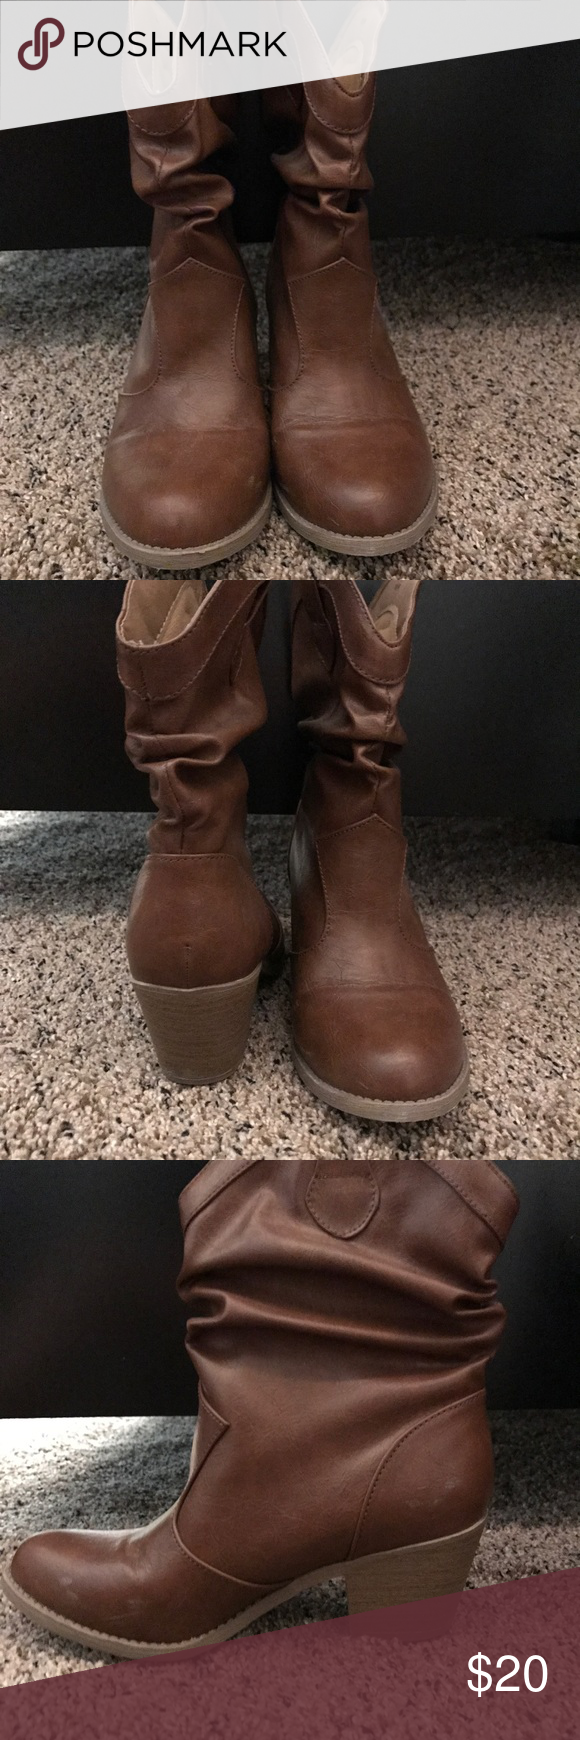 3a4afdefcef5 Ruched ankle booties Worn once